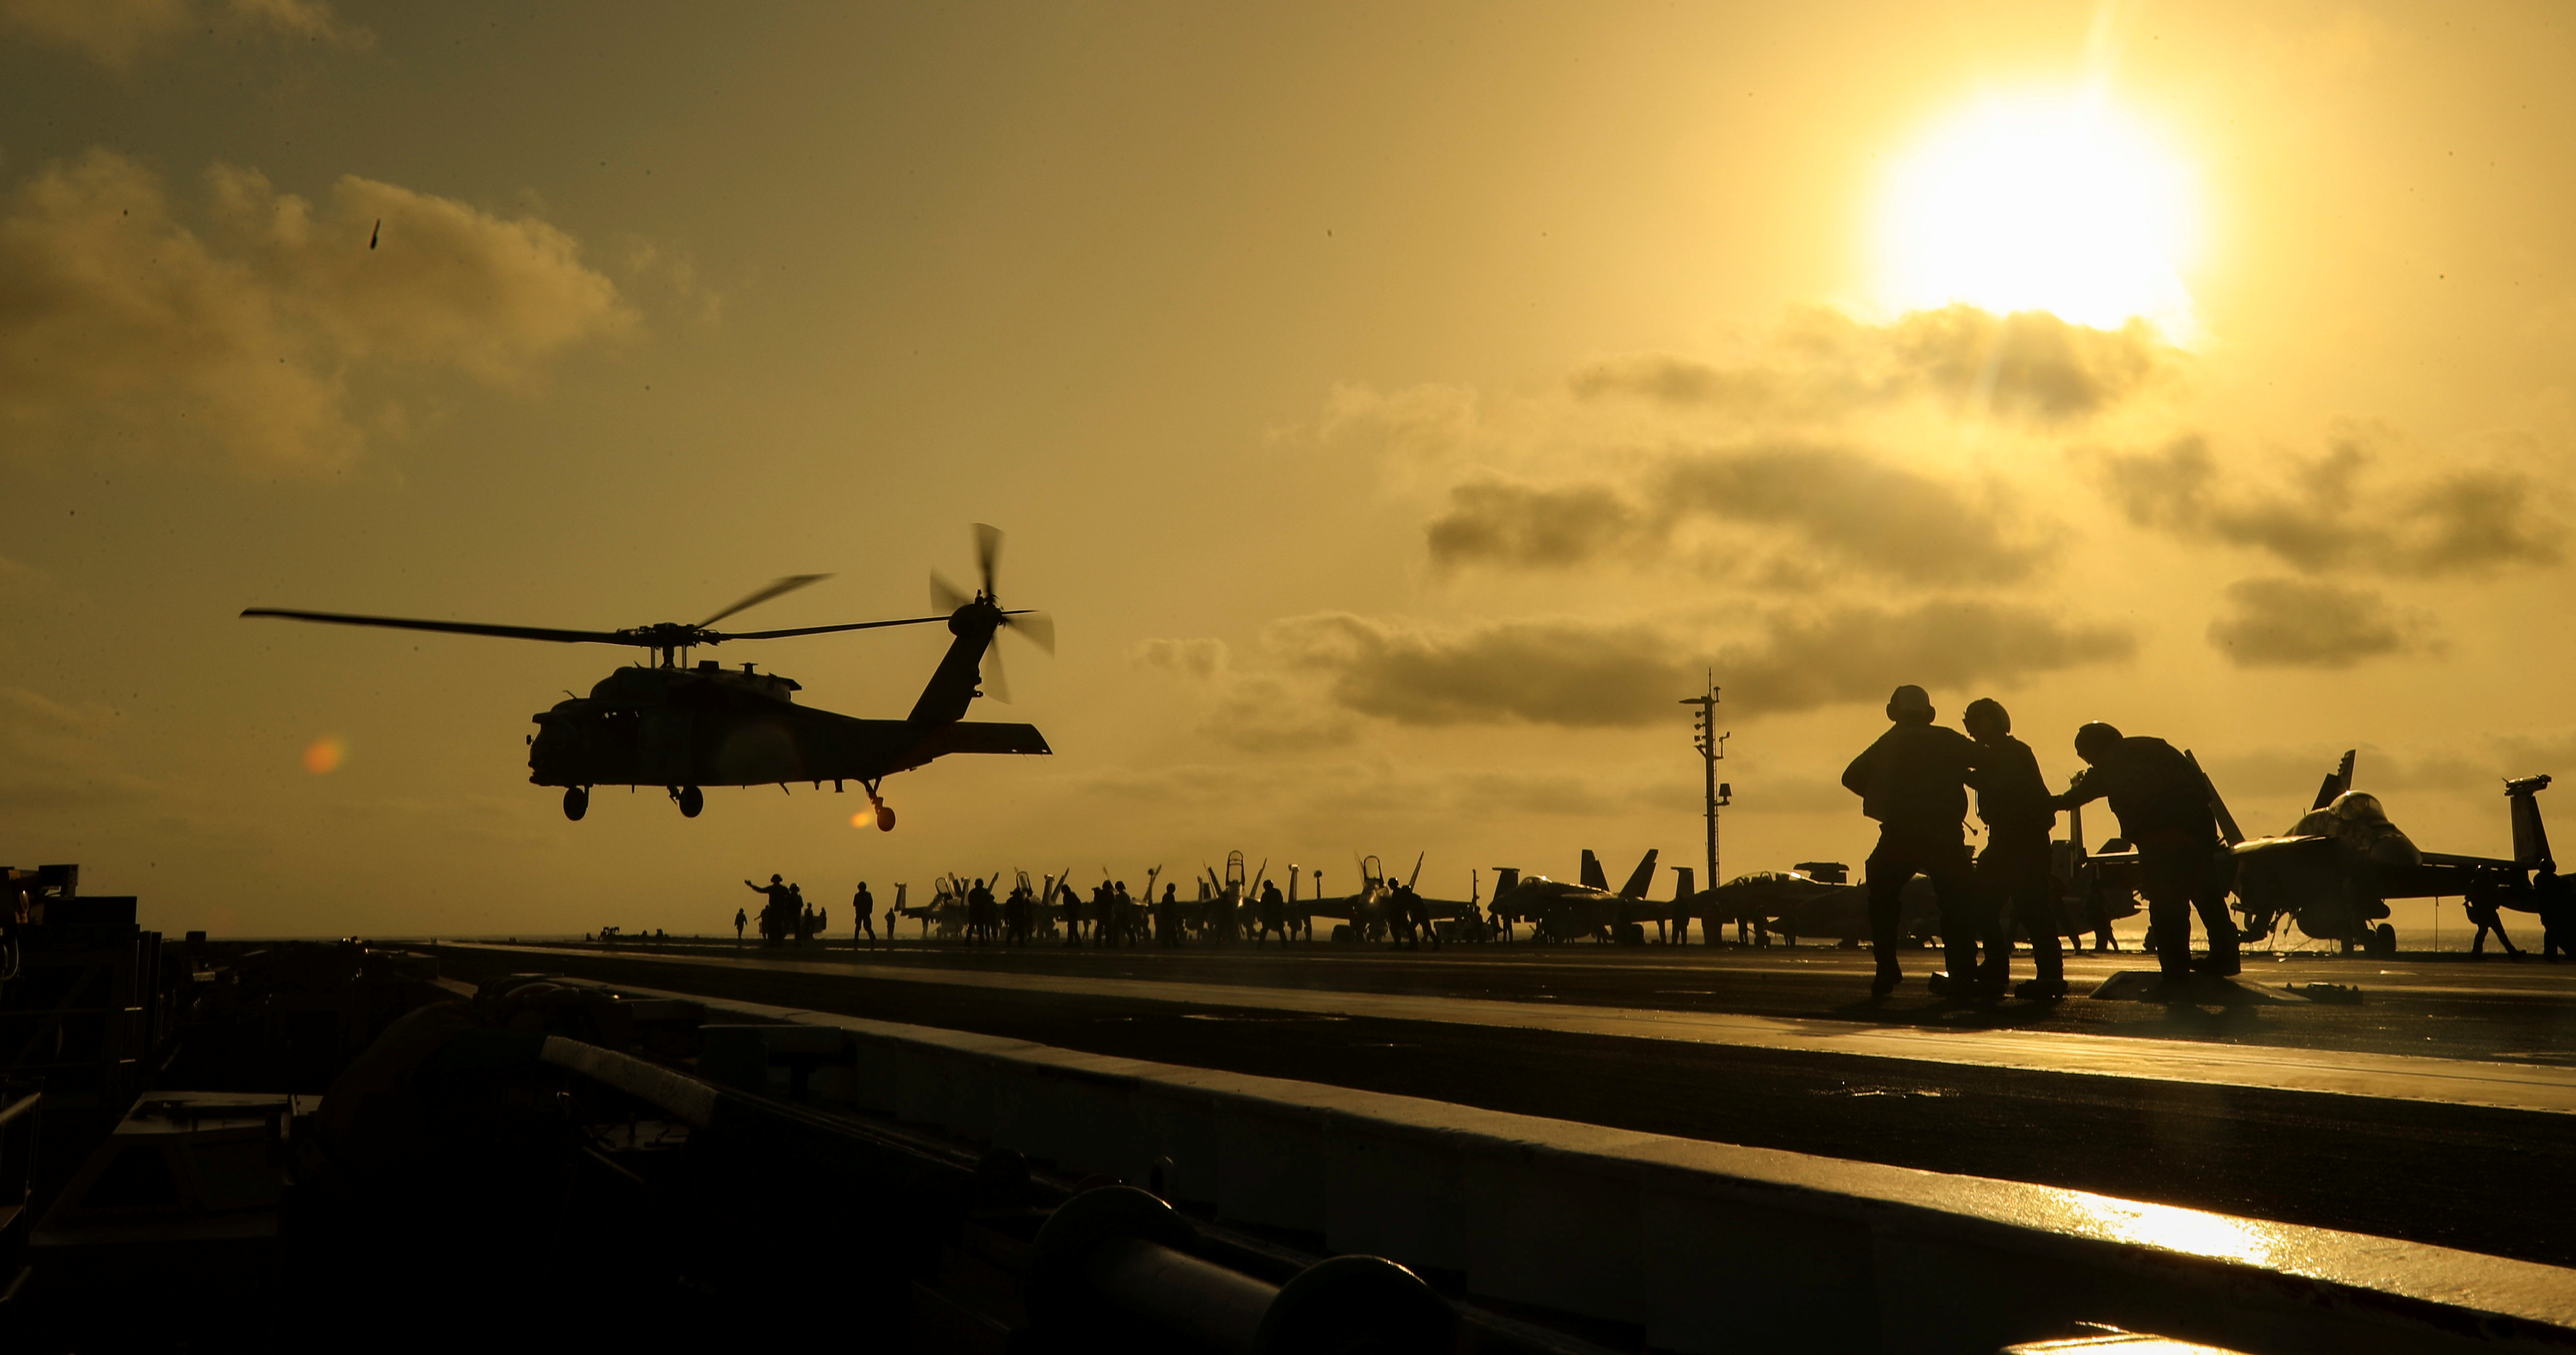 An MH-60S Seahawk helicopter lifts off the flight deck of the USNavy aircraft carrier USS Abraham Lincolnin the Arabian Sea, June 3, 2019.